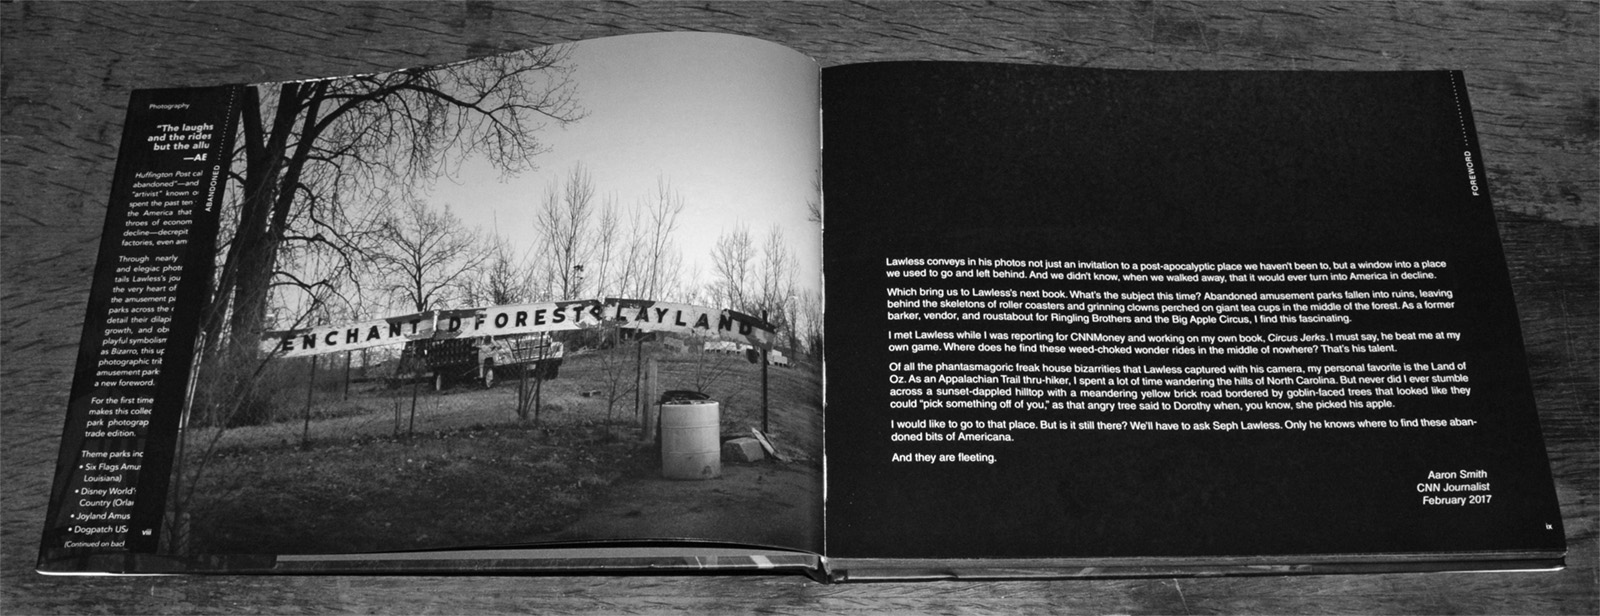 Seph Lawless Abandoned Theme Parks Book 02 A Year In The Country